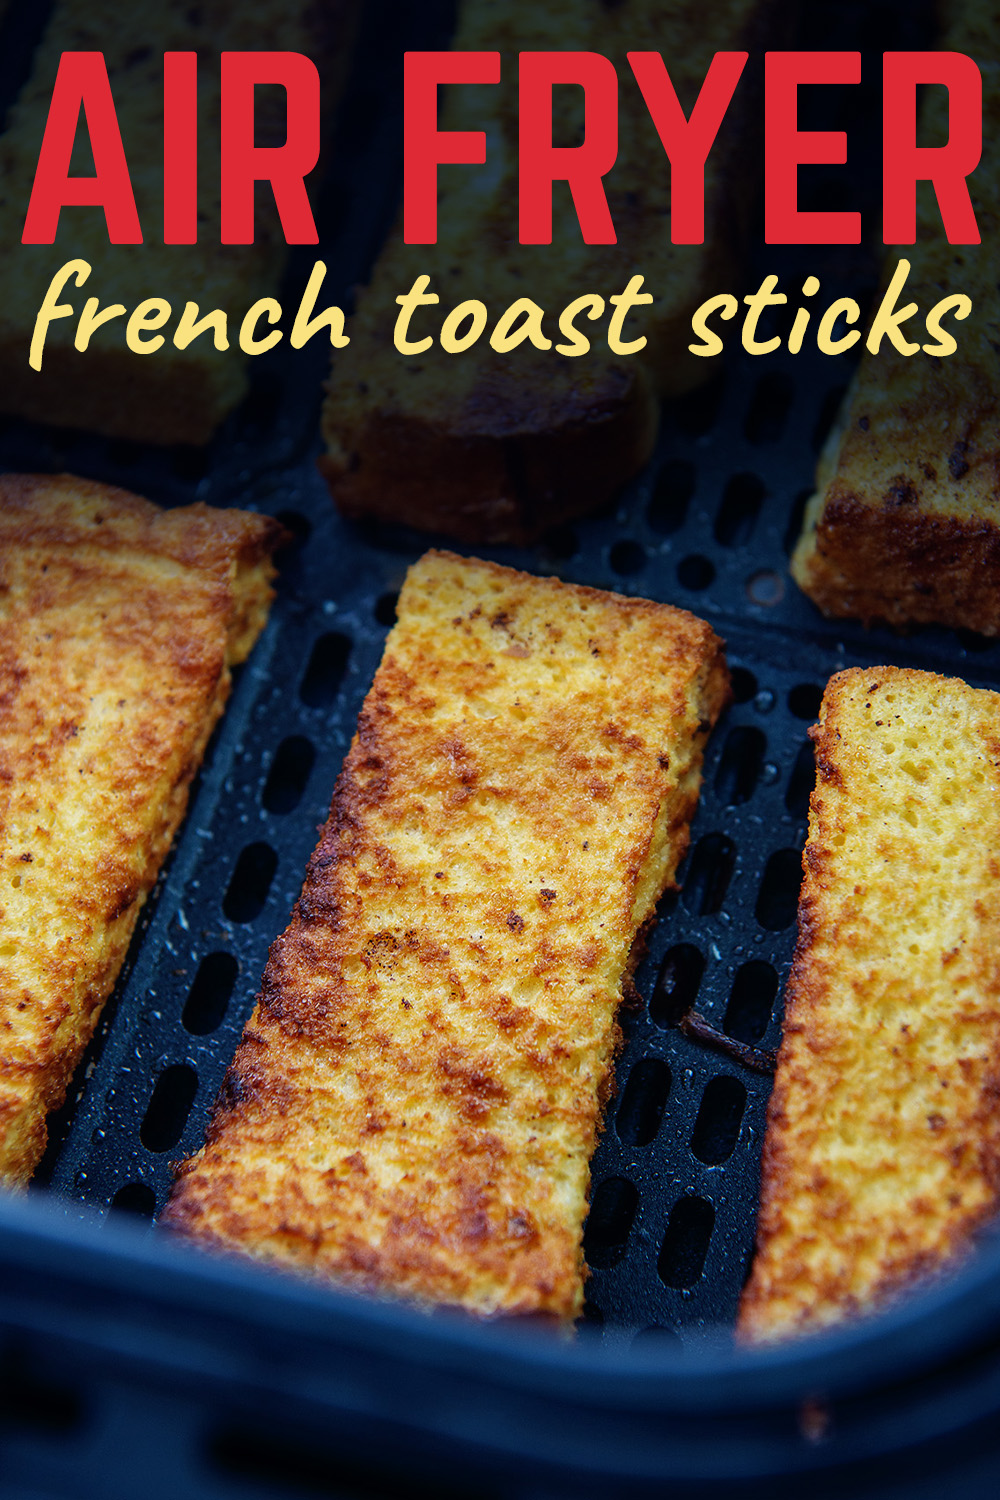 Fluffy French toast sticks have a wonderful crisp edge when you cook them in the air fryer!